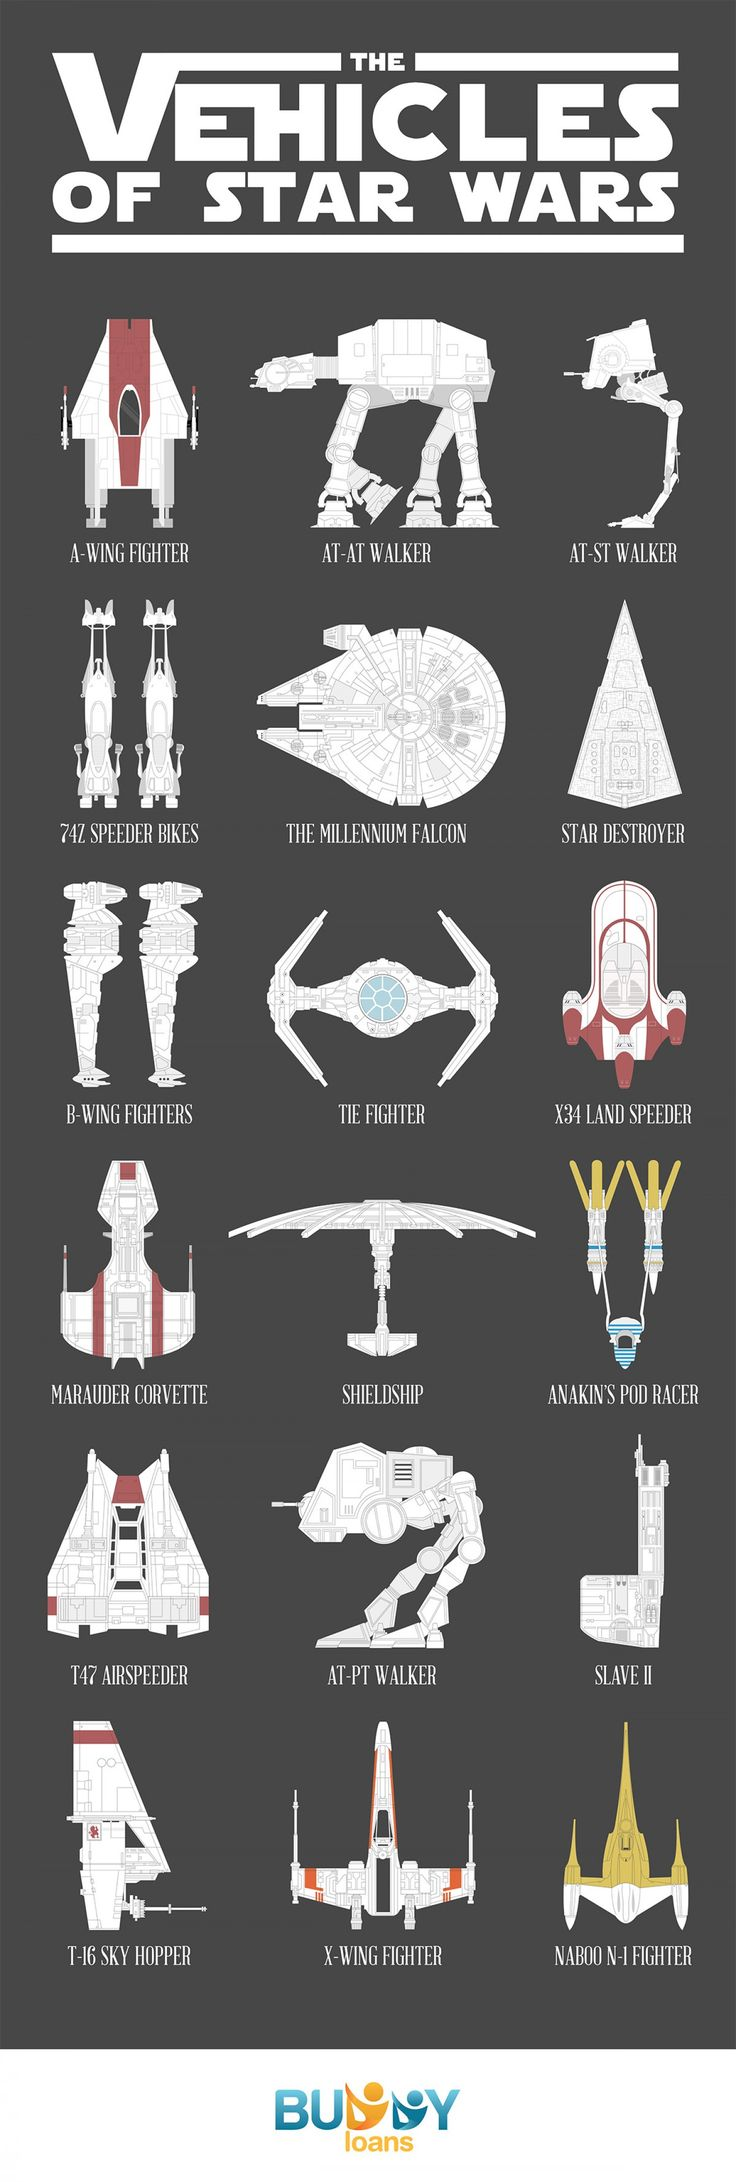 The Vehicles of Star Wars Infographic